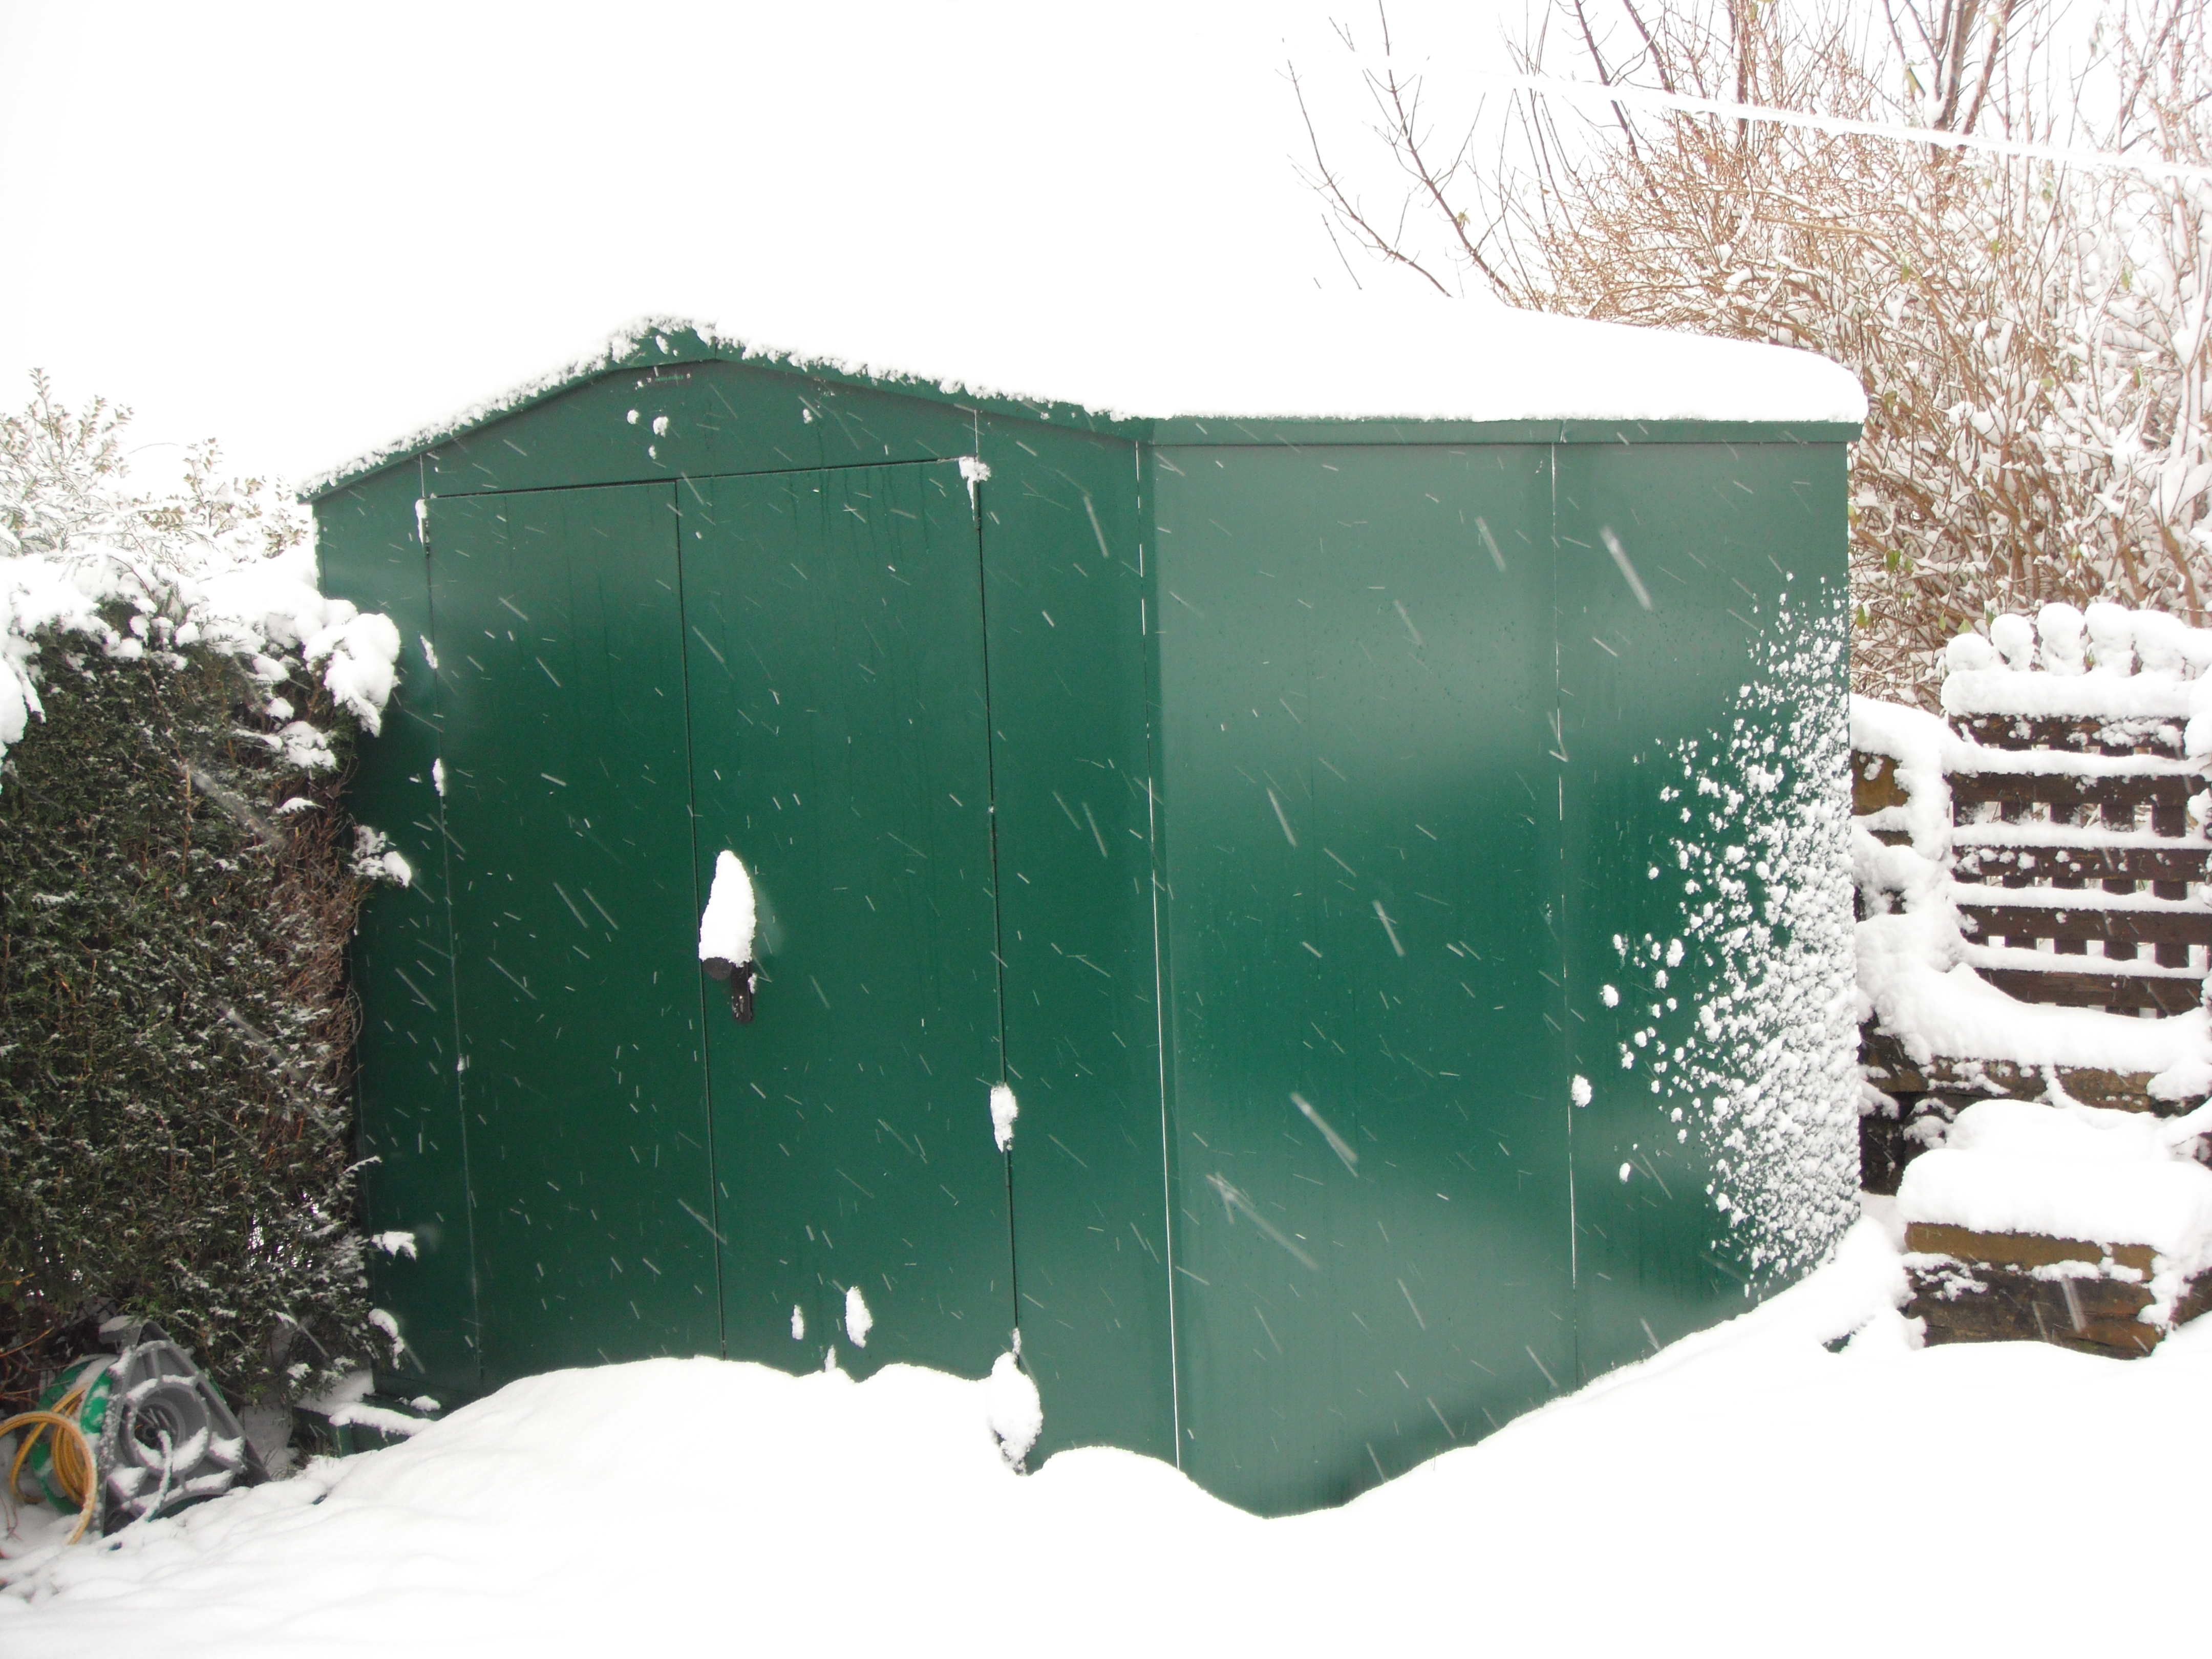 Prepare your garden shed for winter